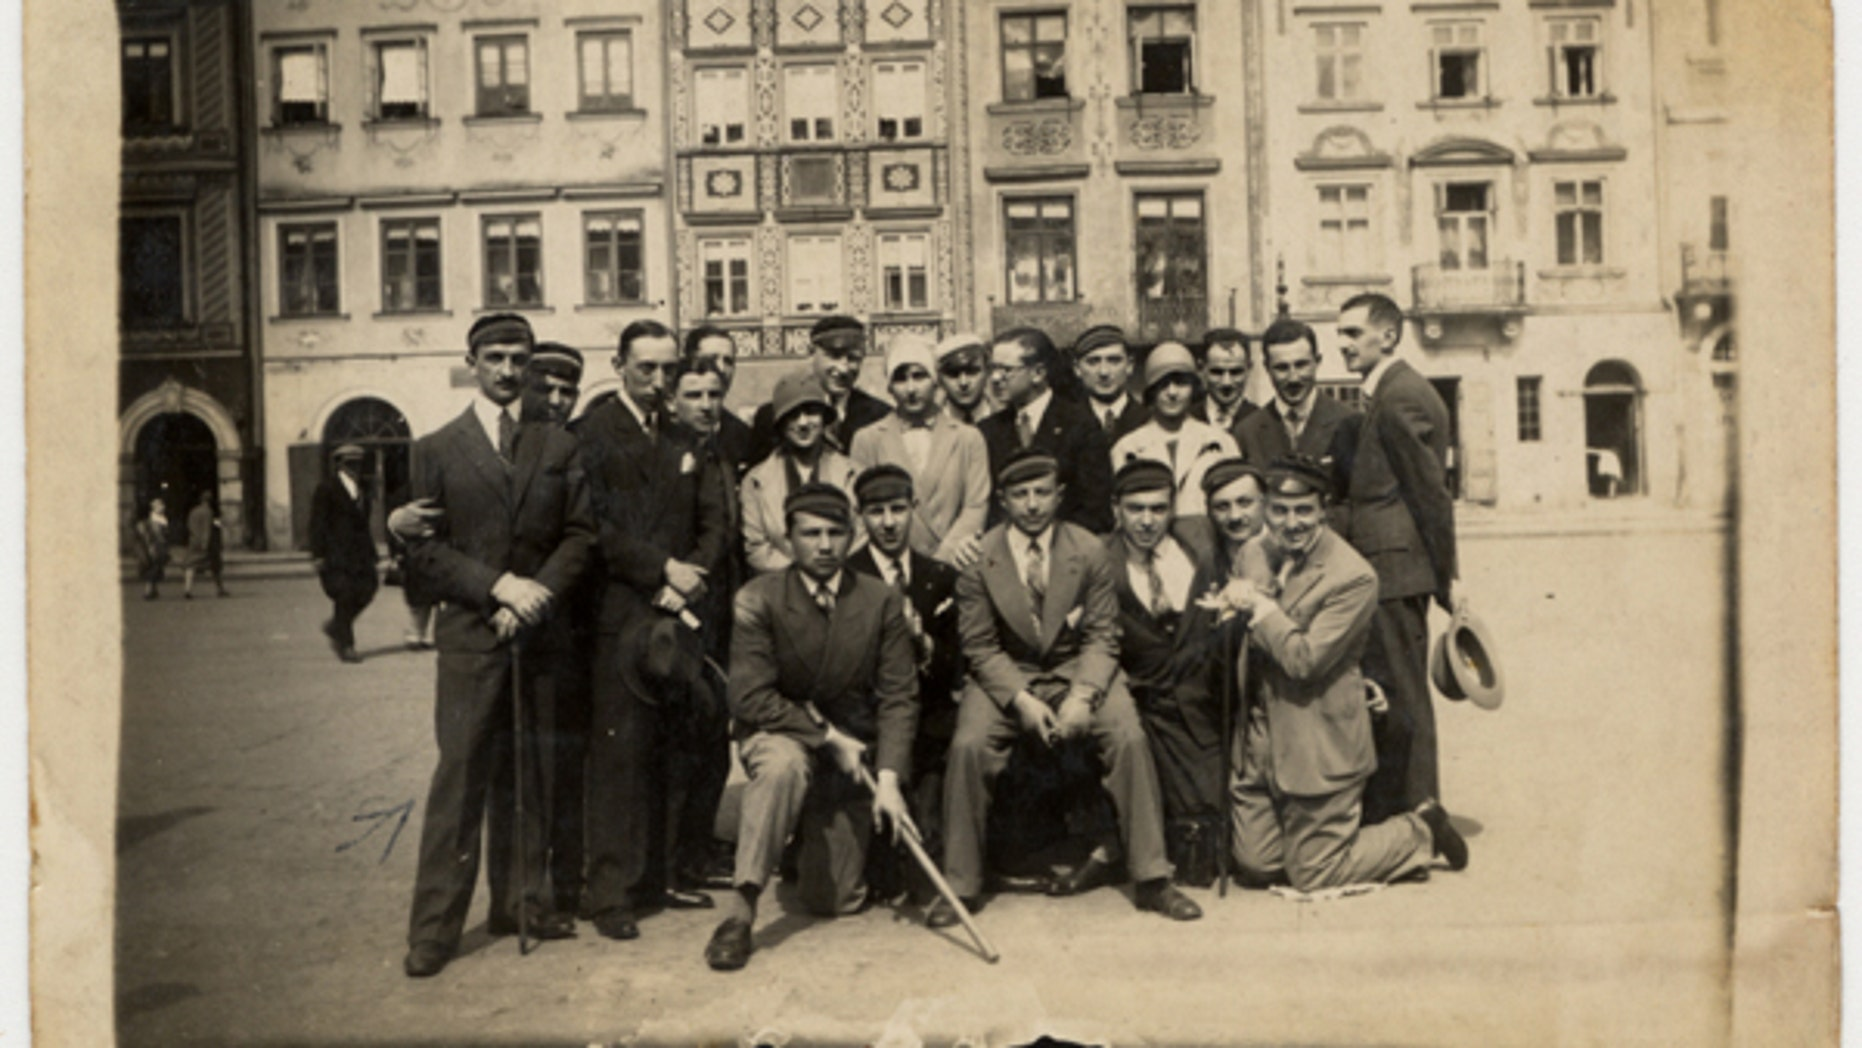 A group of friends, many of whom are wearing university caps, pose for a group portrait on a street in Warsaw. The photo is on display at the United States Holocaust Memorial Museum